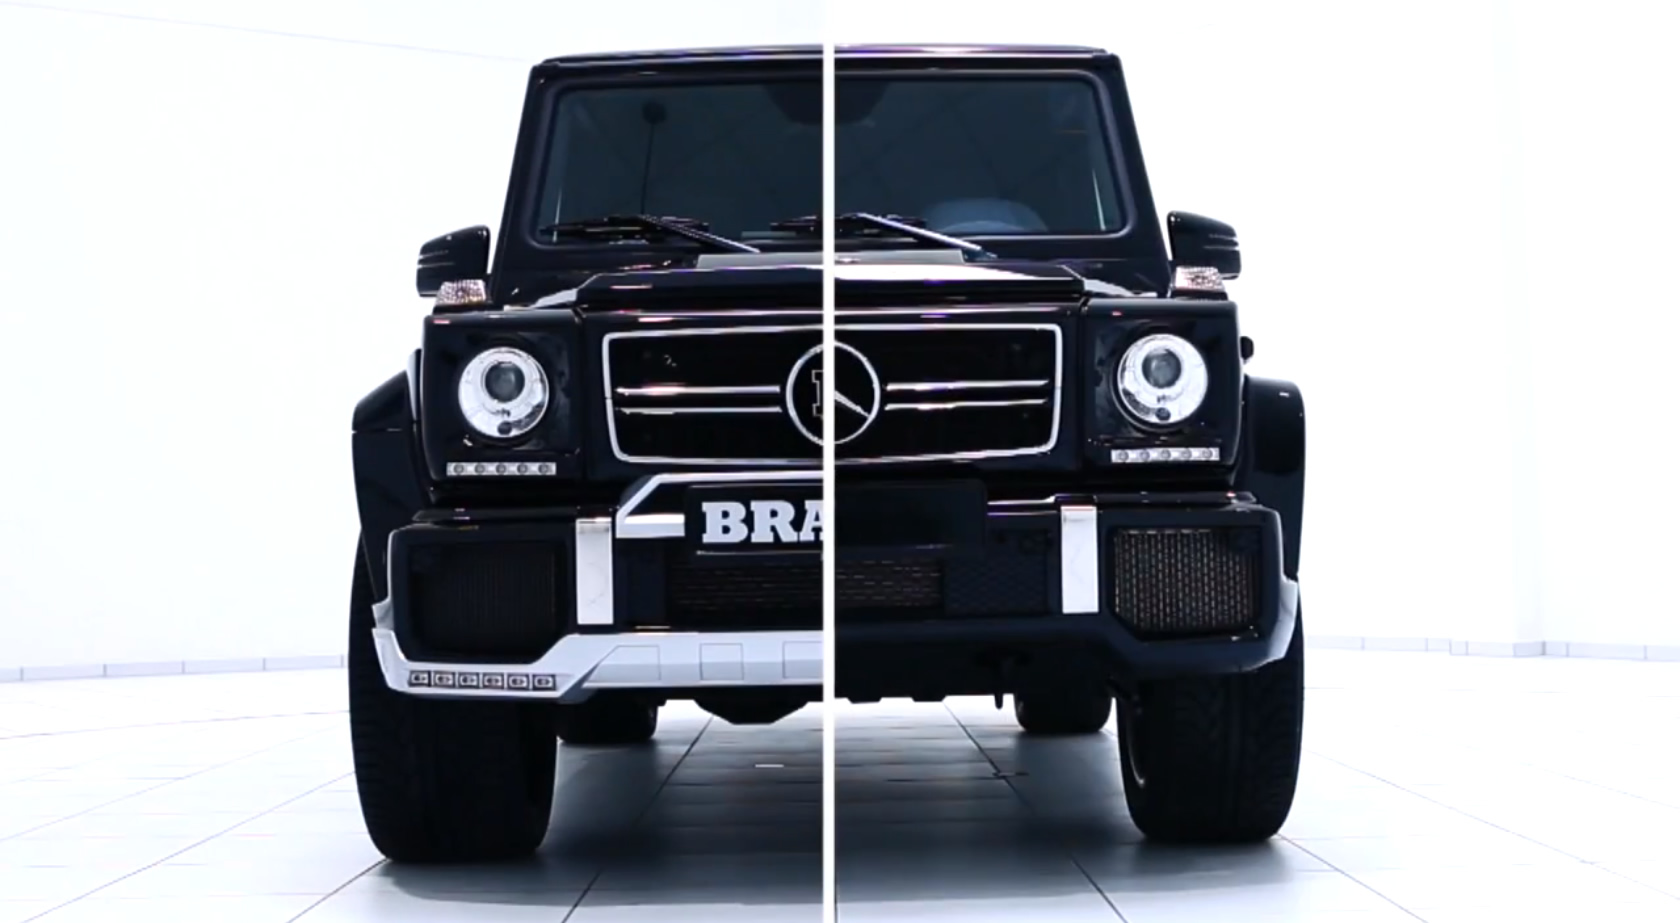 BRABUS Widestar G63 AMG Unveiled Ahead of Essen Motor Show ...